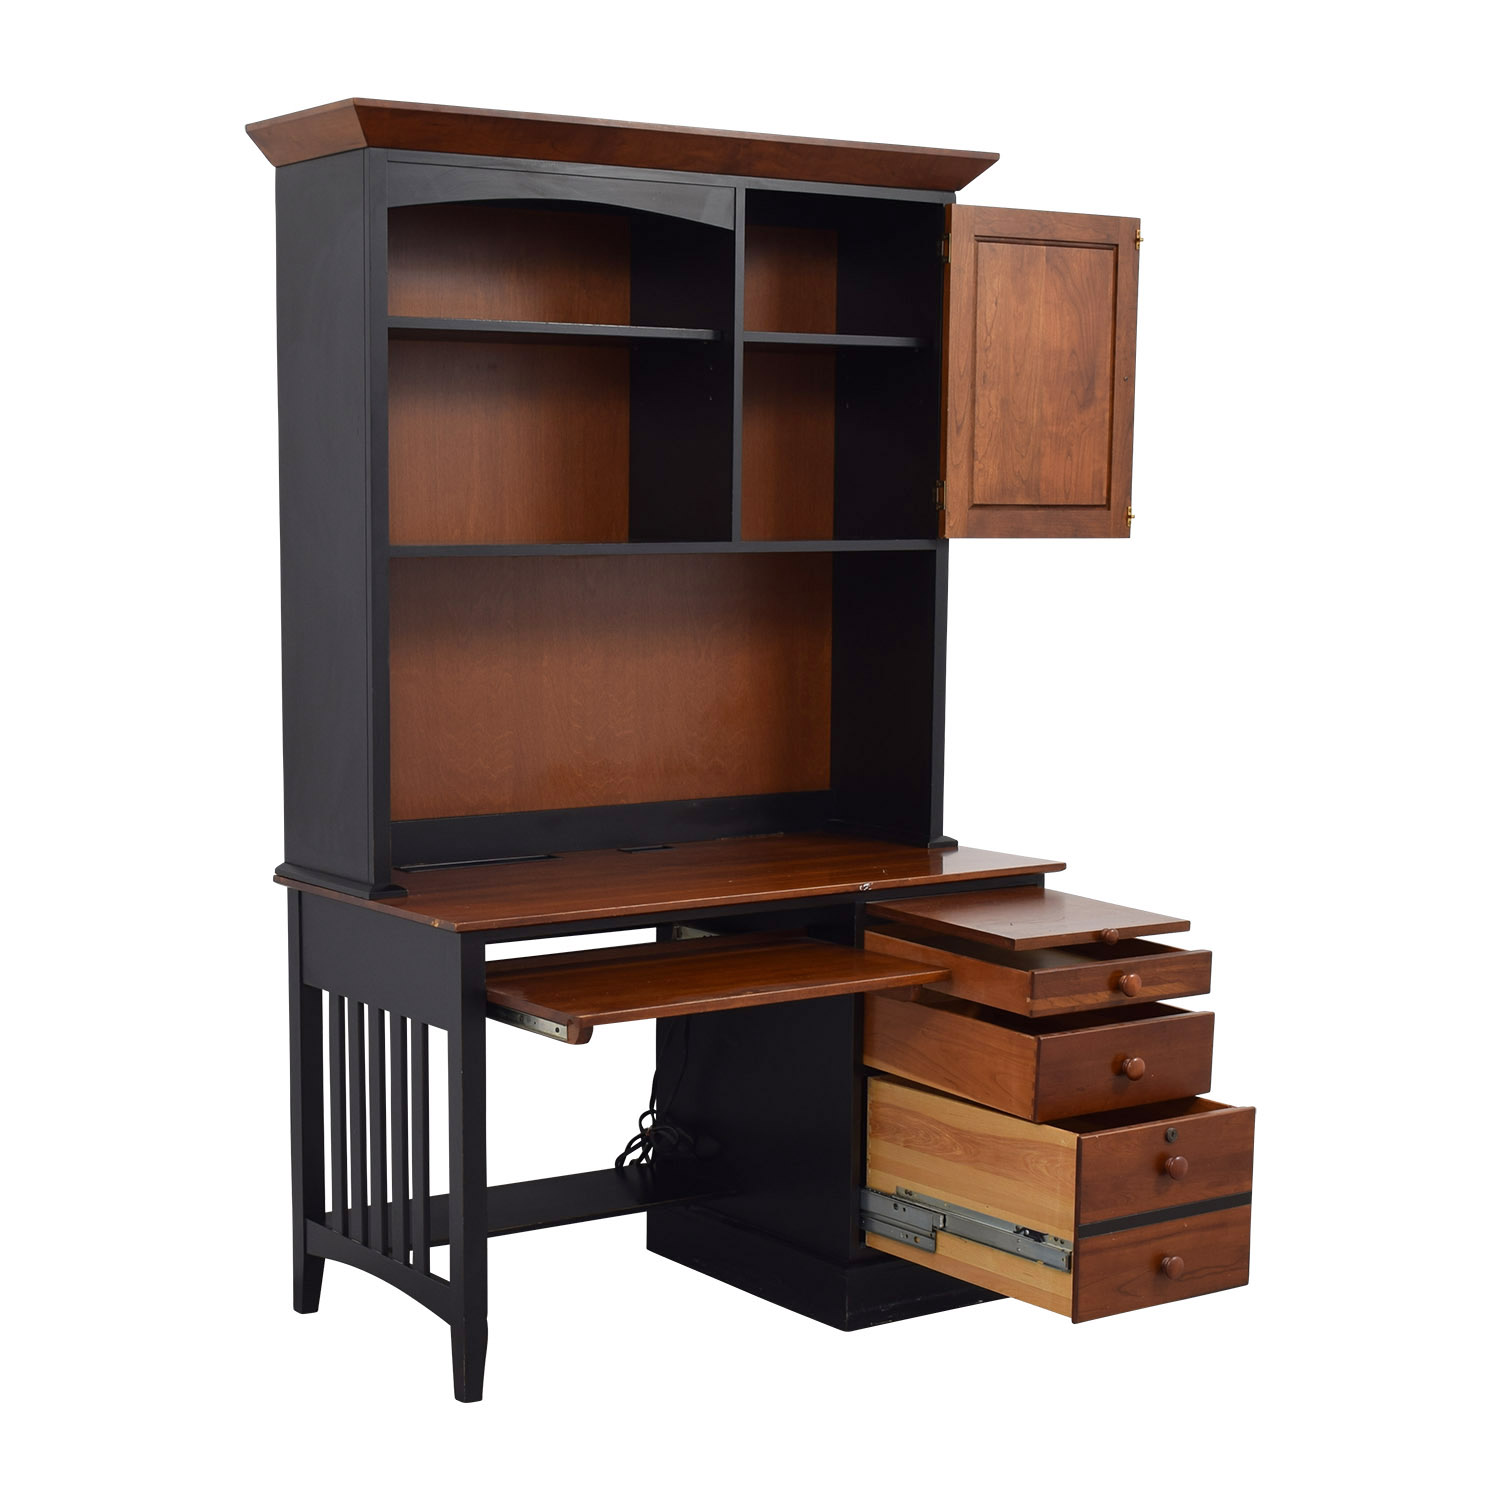 87 Off Ethan Allen Ethan Allen Cherry Wood Amp Black Desk